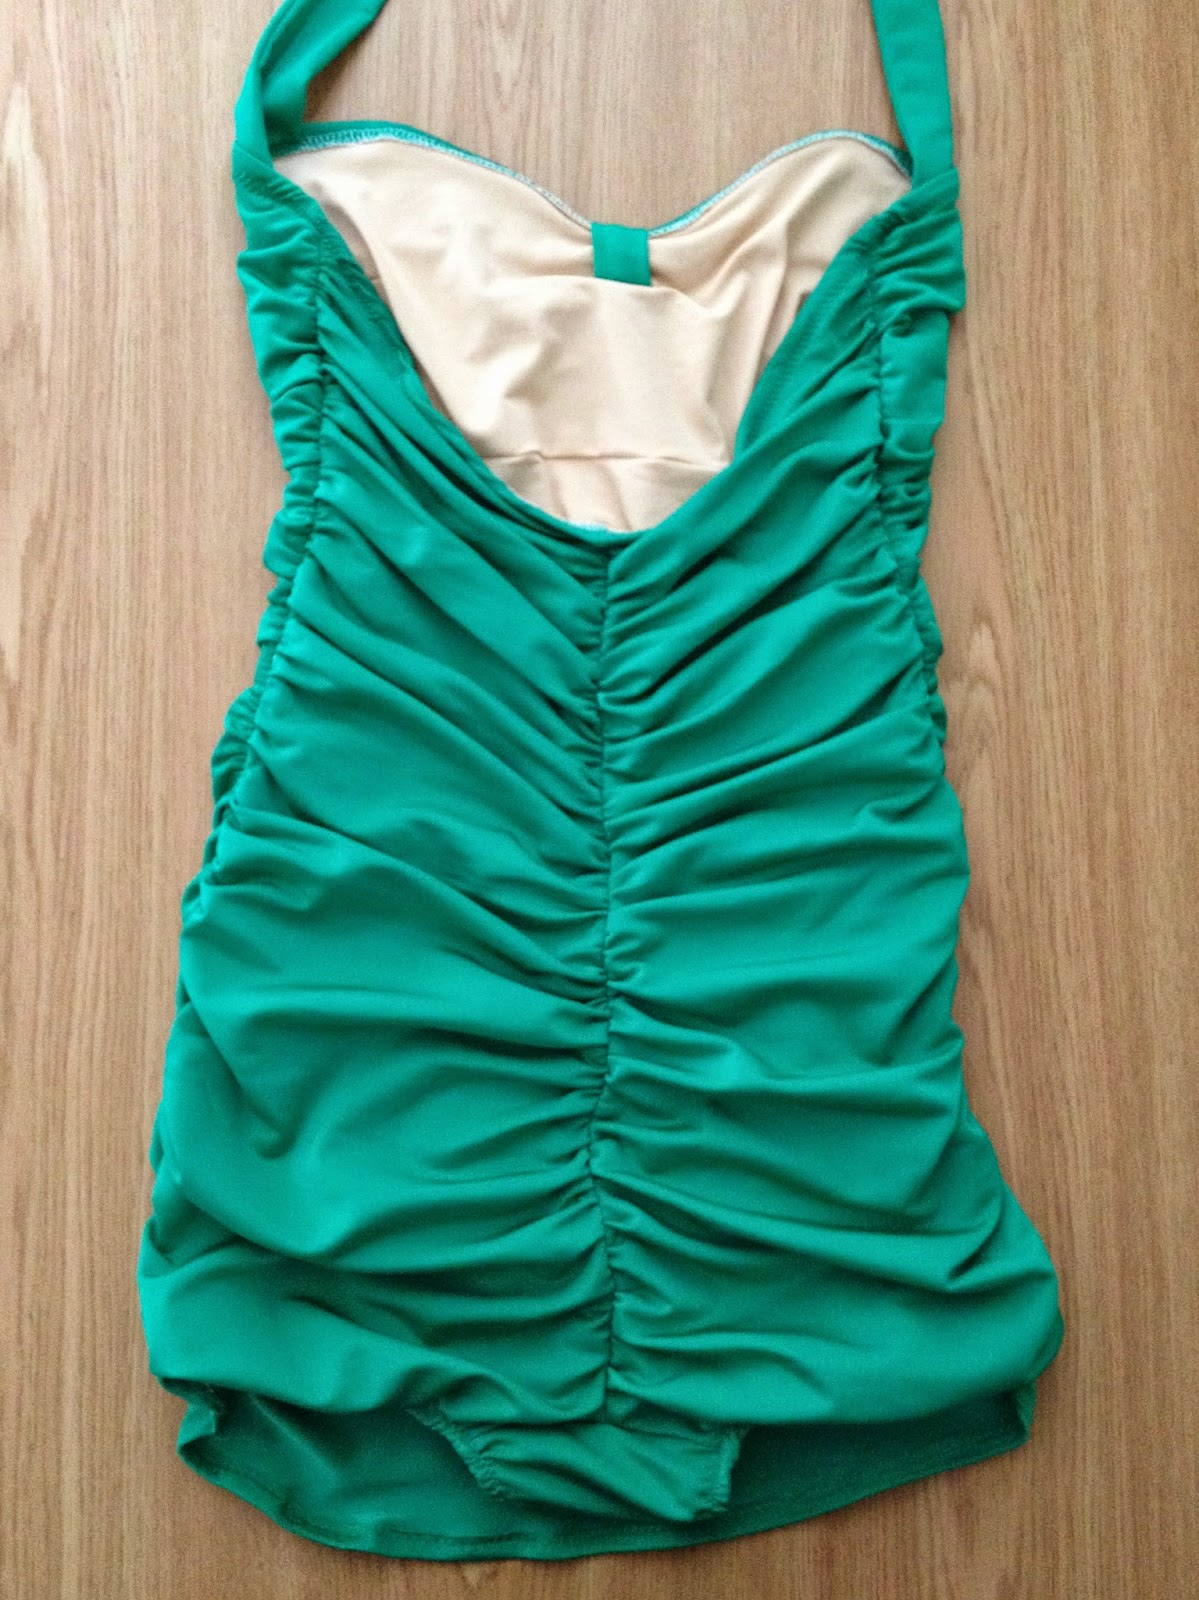 Diary of a Chainstitcher: Emerald Green Bombshell Swimsuit